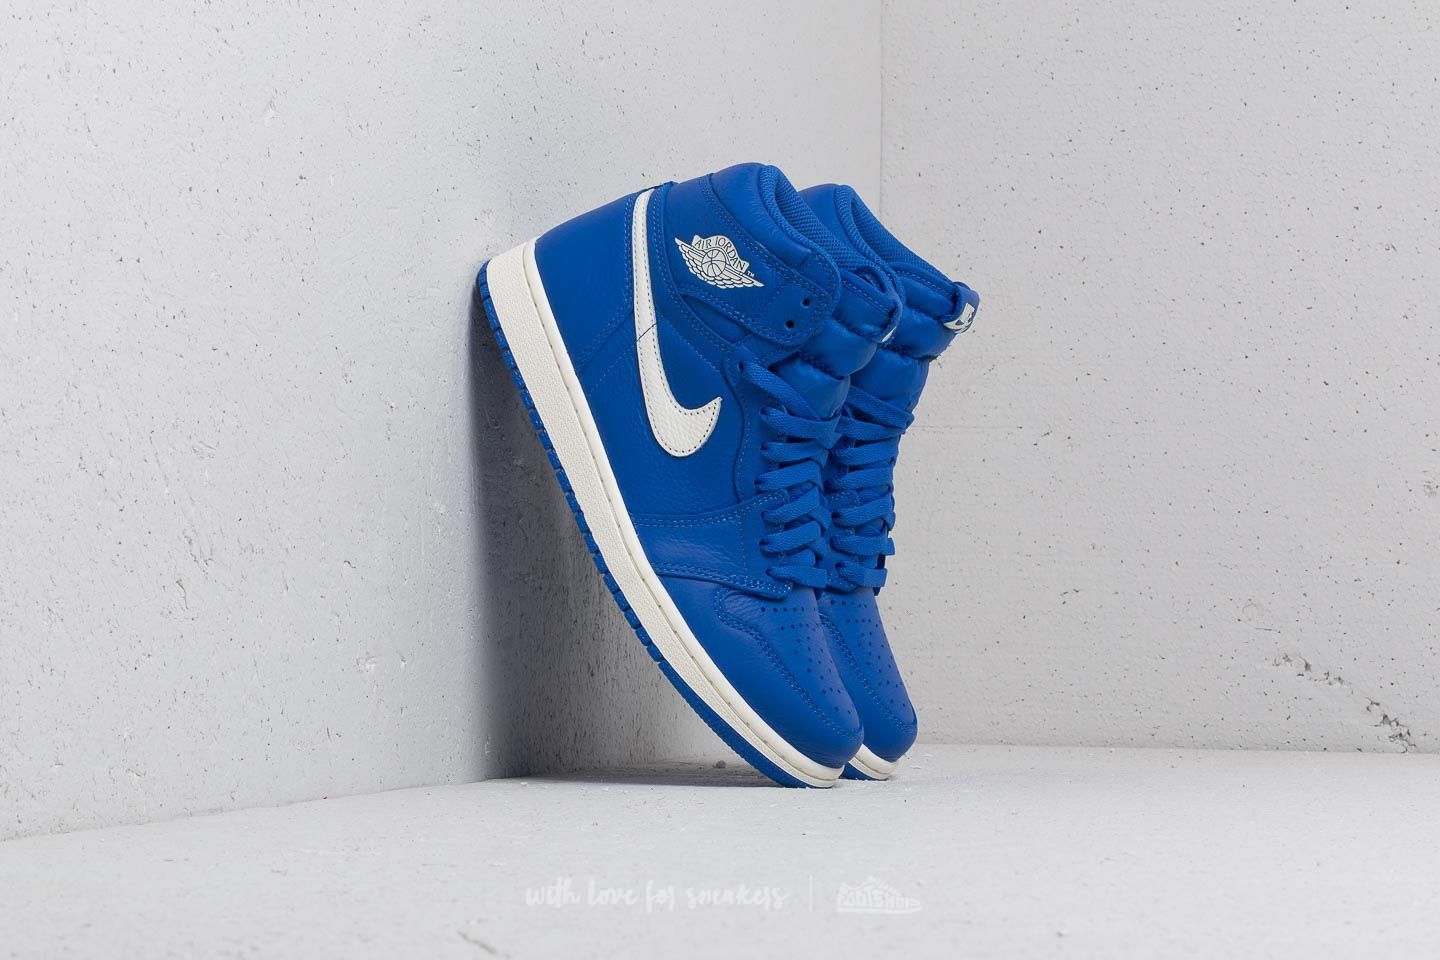 Air Jordan 1 Retro High OG Hyper Royal/ Sail